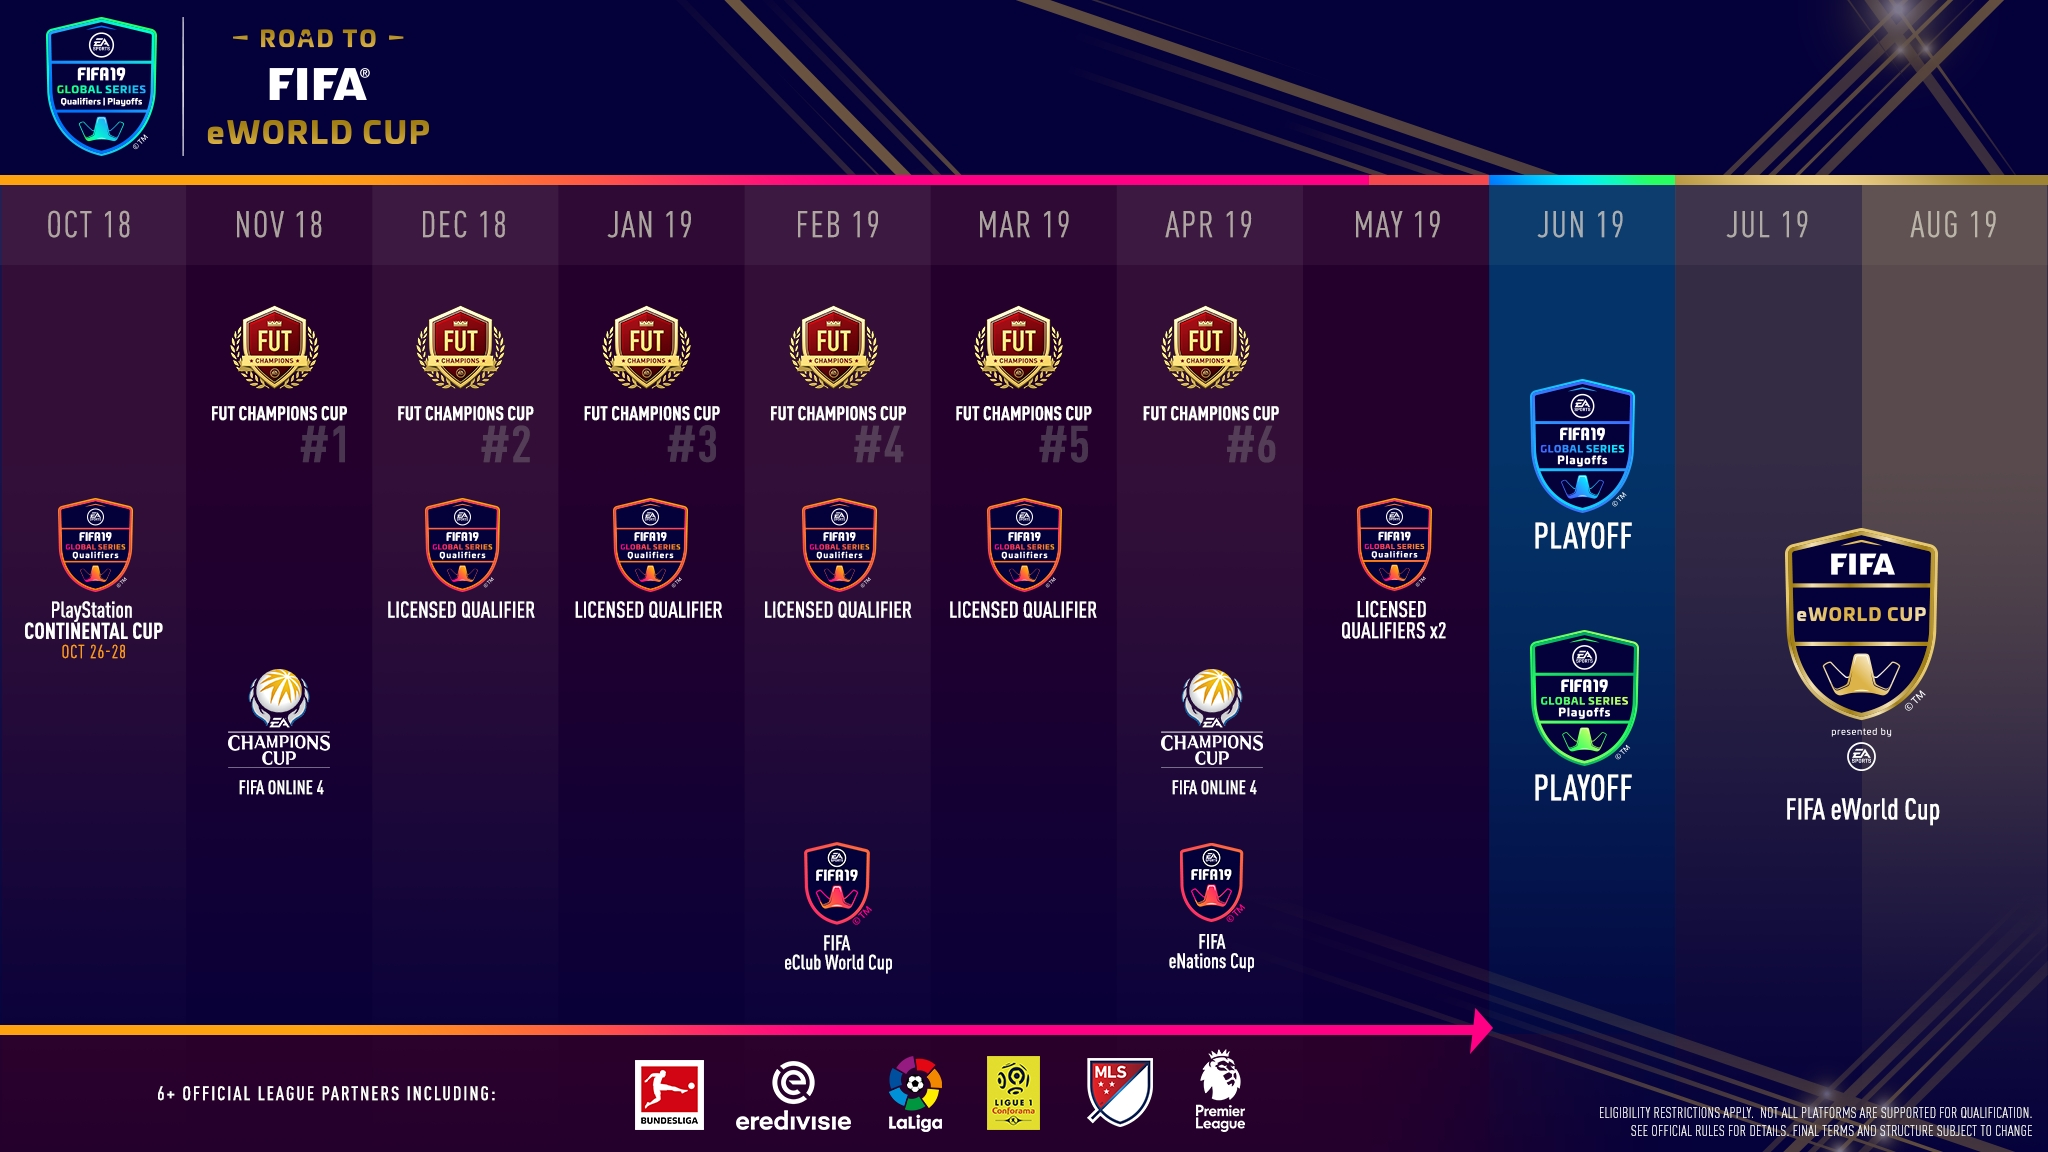 Electronic Arts and FIFA Reveal EA SPORTS FIFA 19 Global Series on